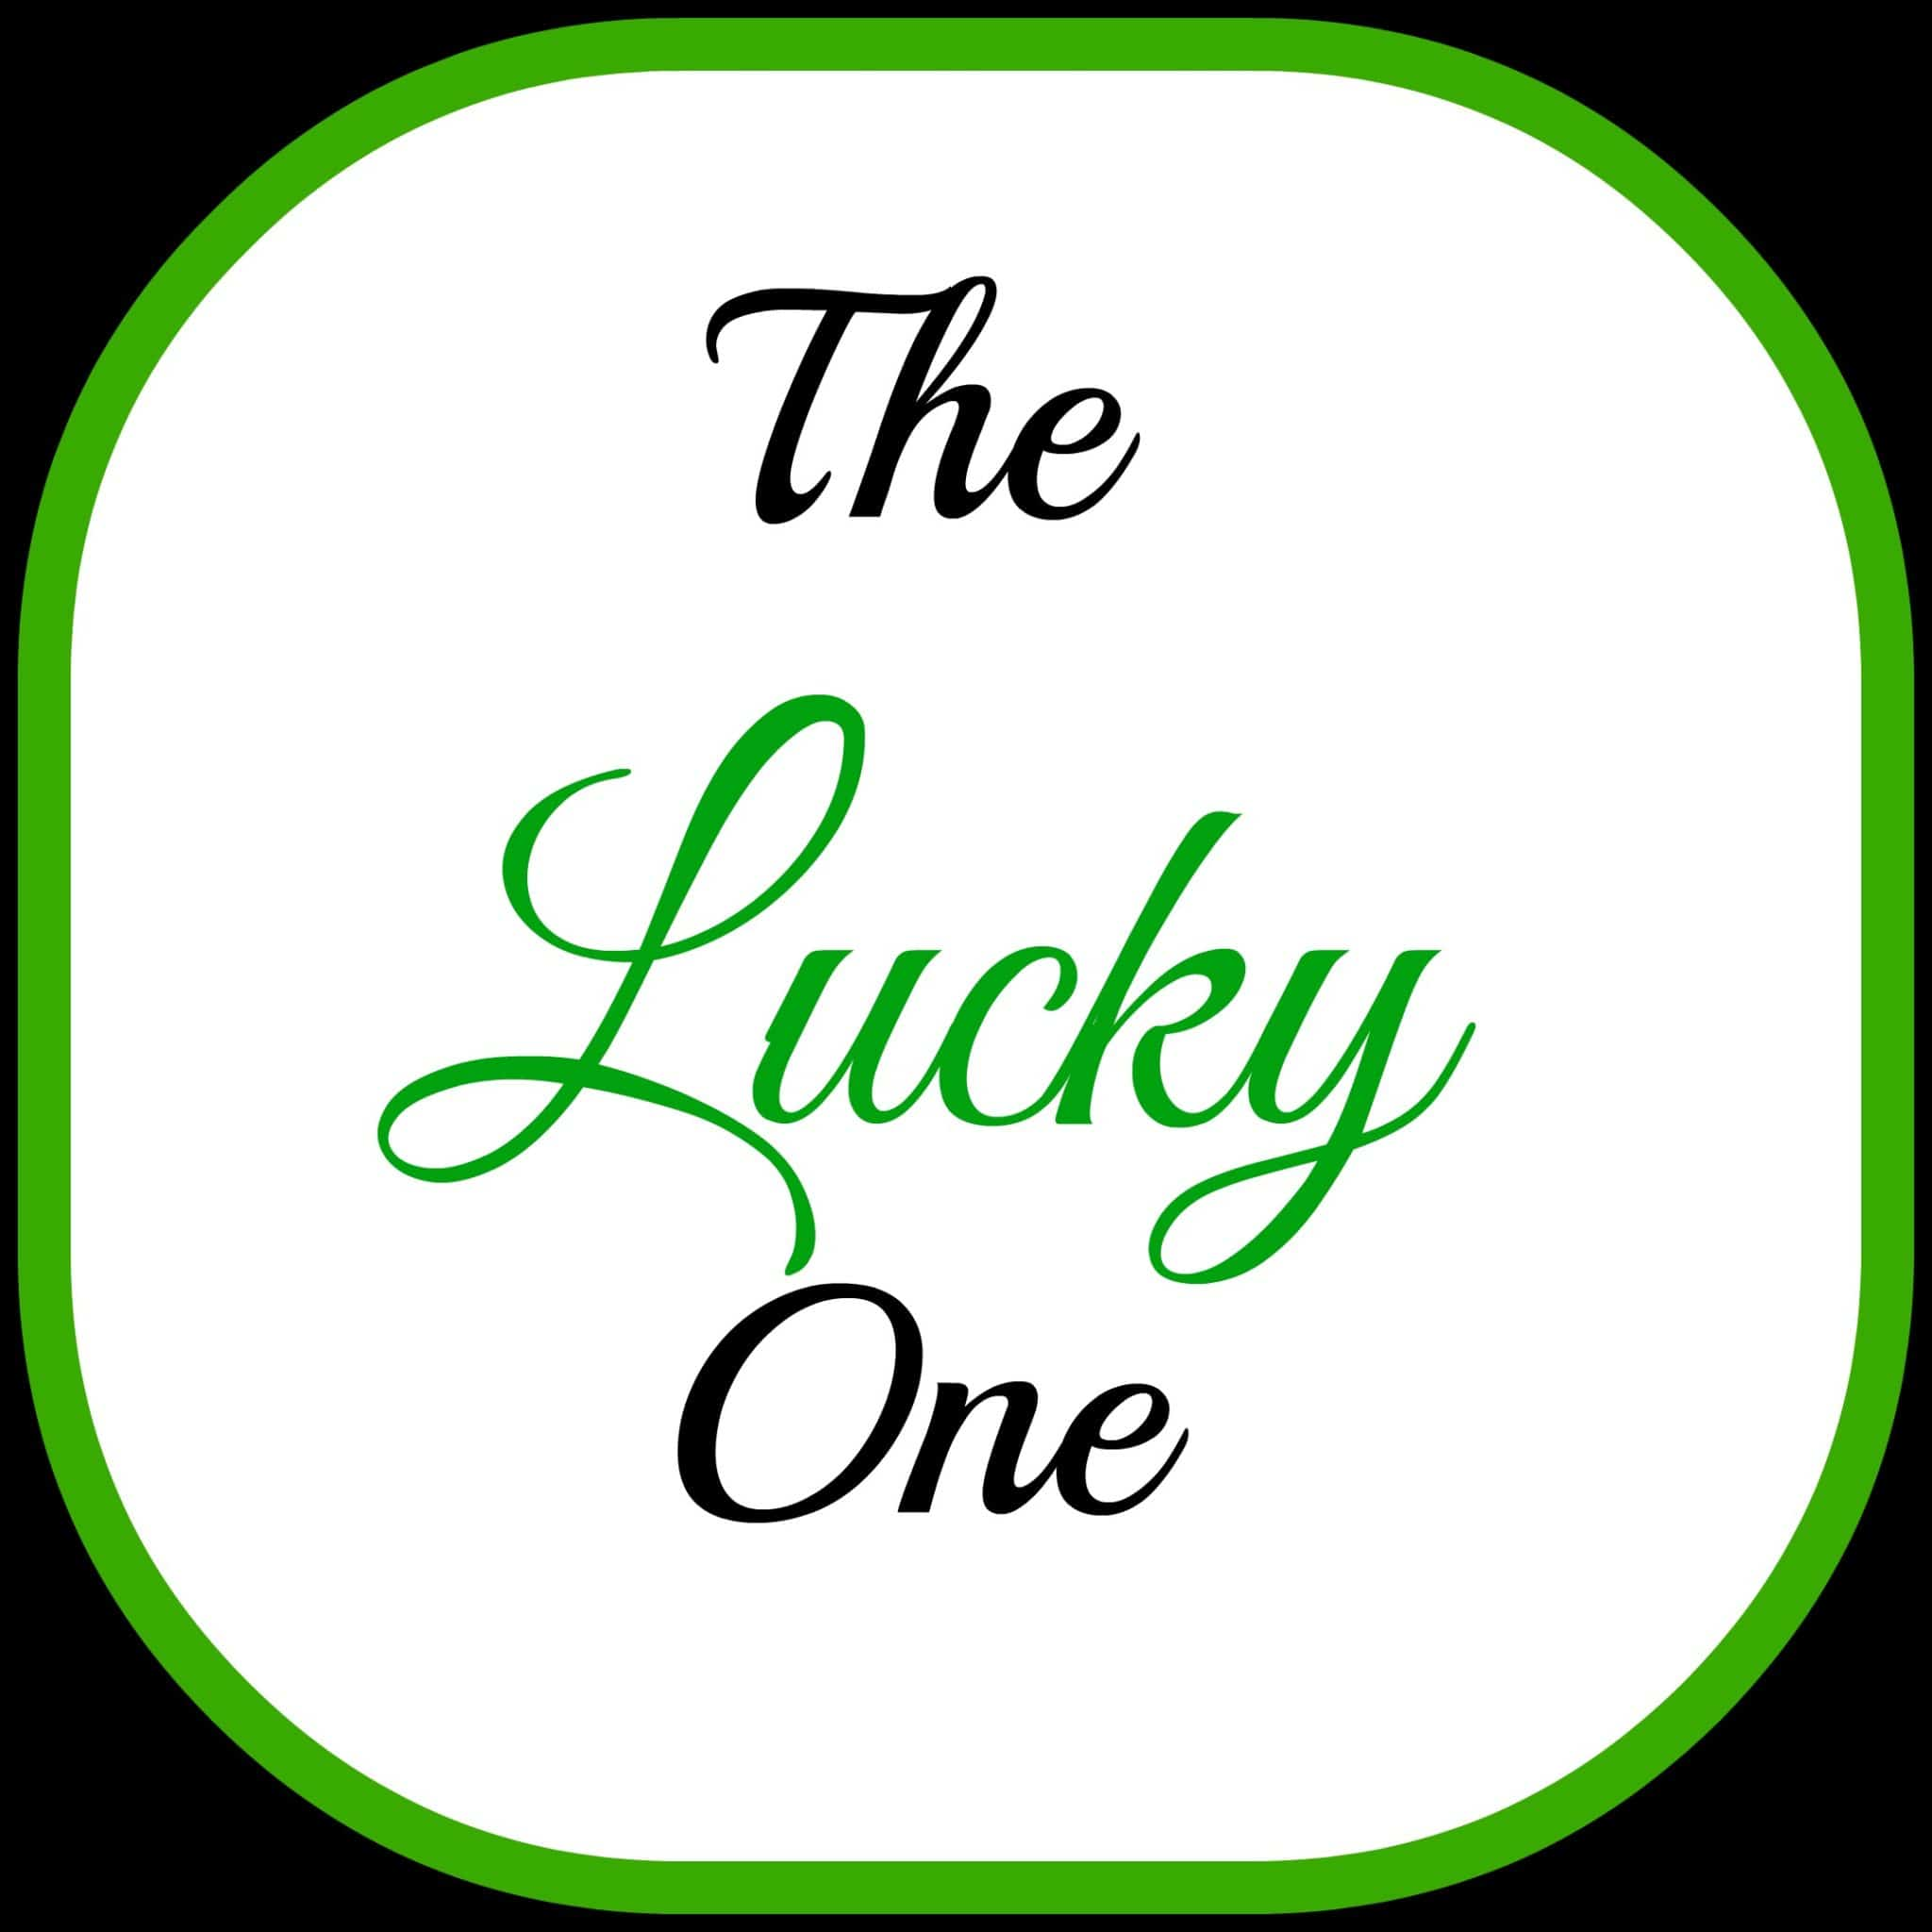 #BehindTheBlogger The Lucky One